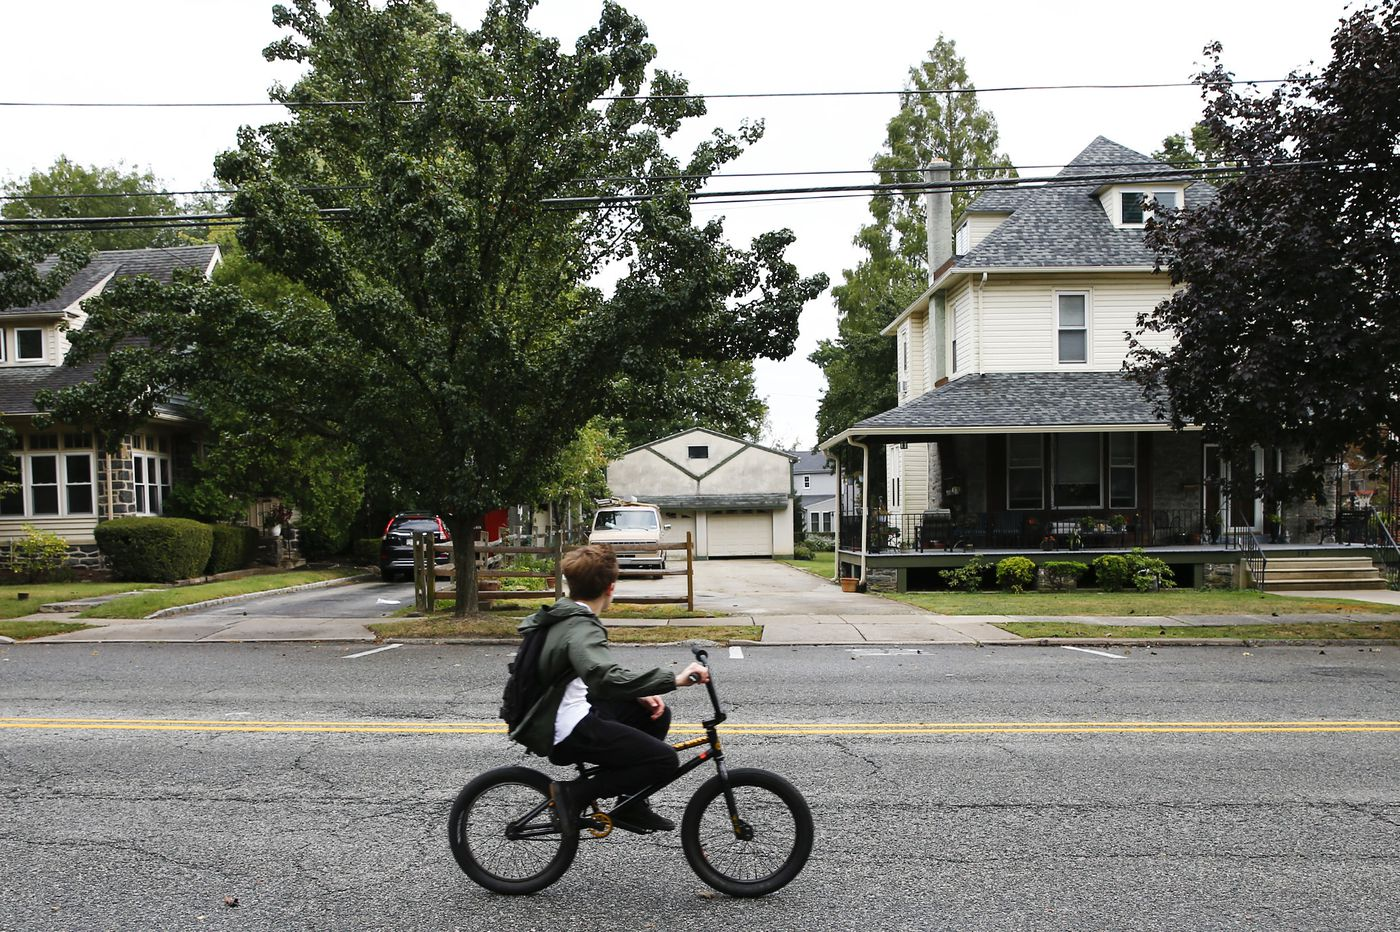 How Havertown became hot with old-fashioned charm, and without big development